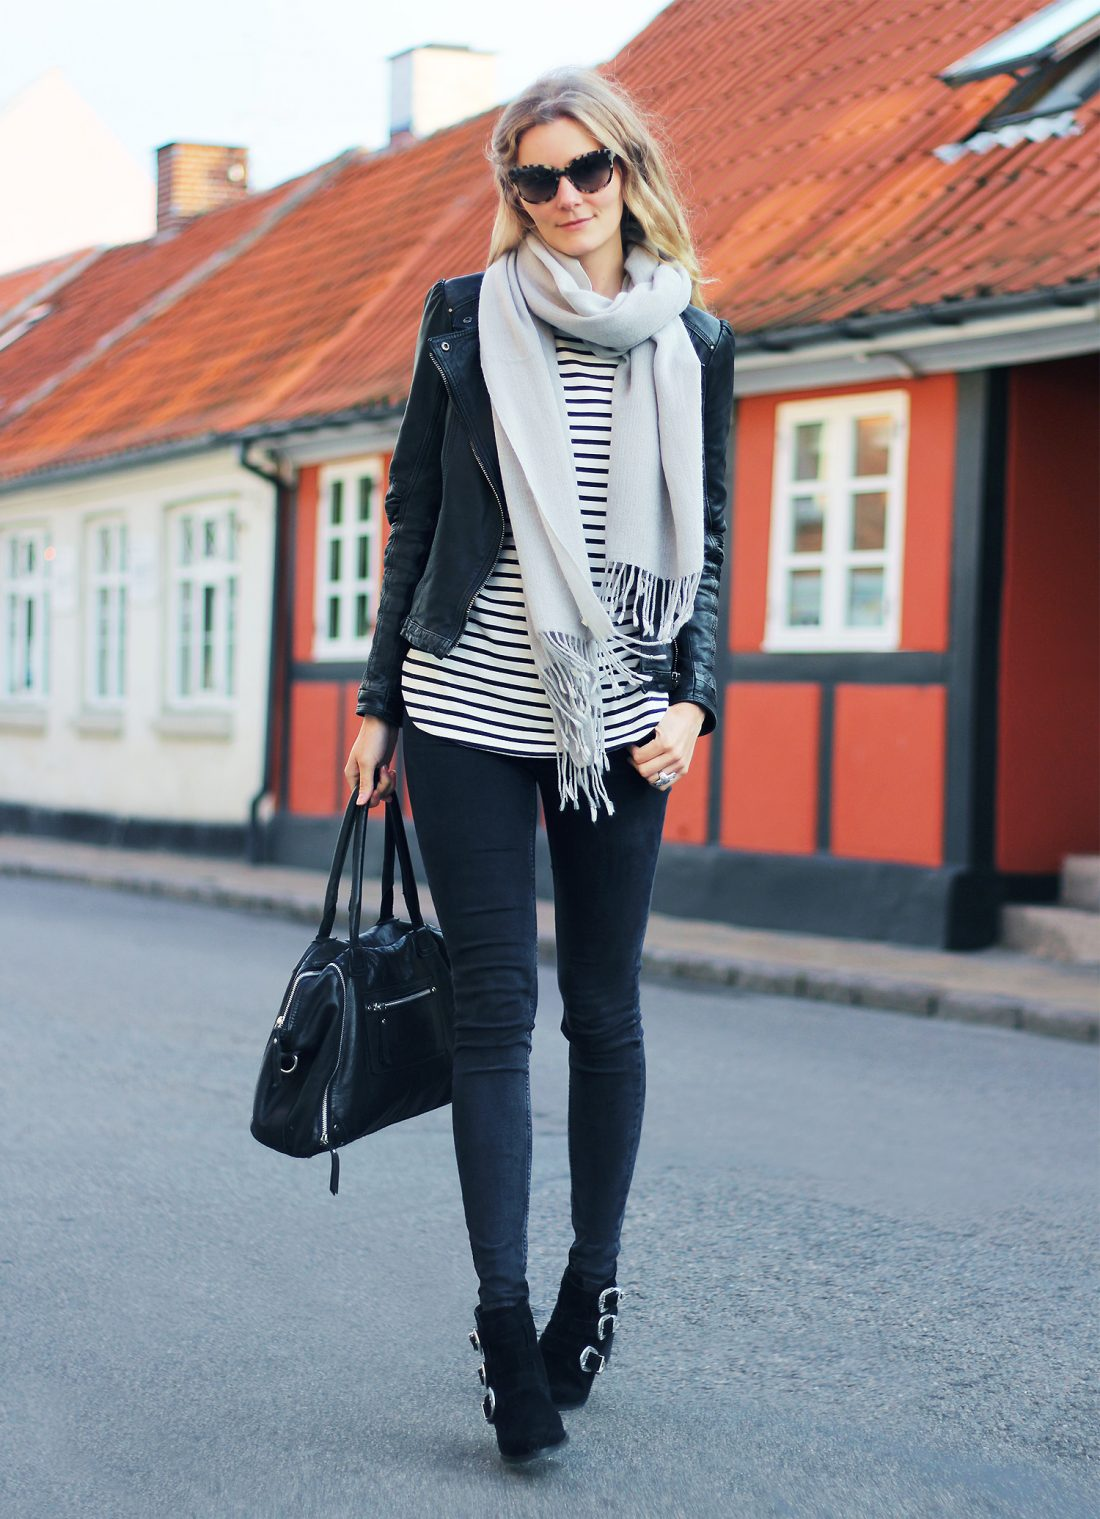 outfit@2x.jpg